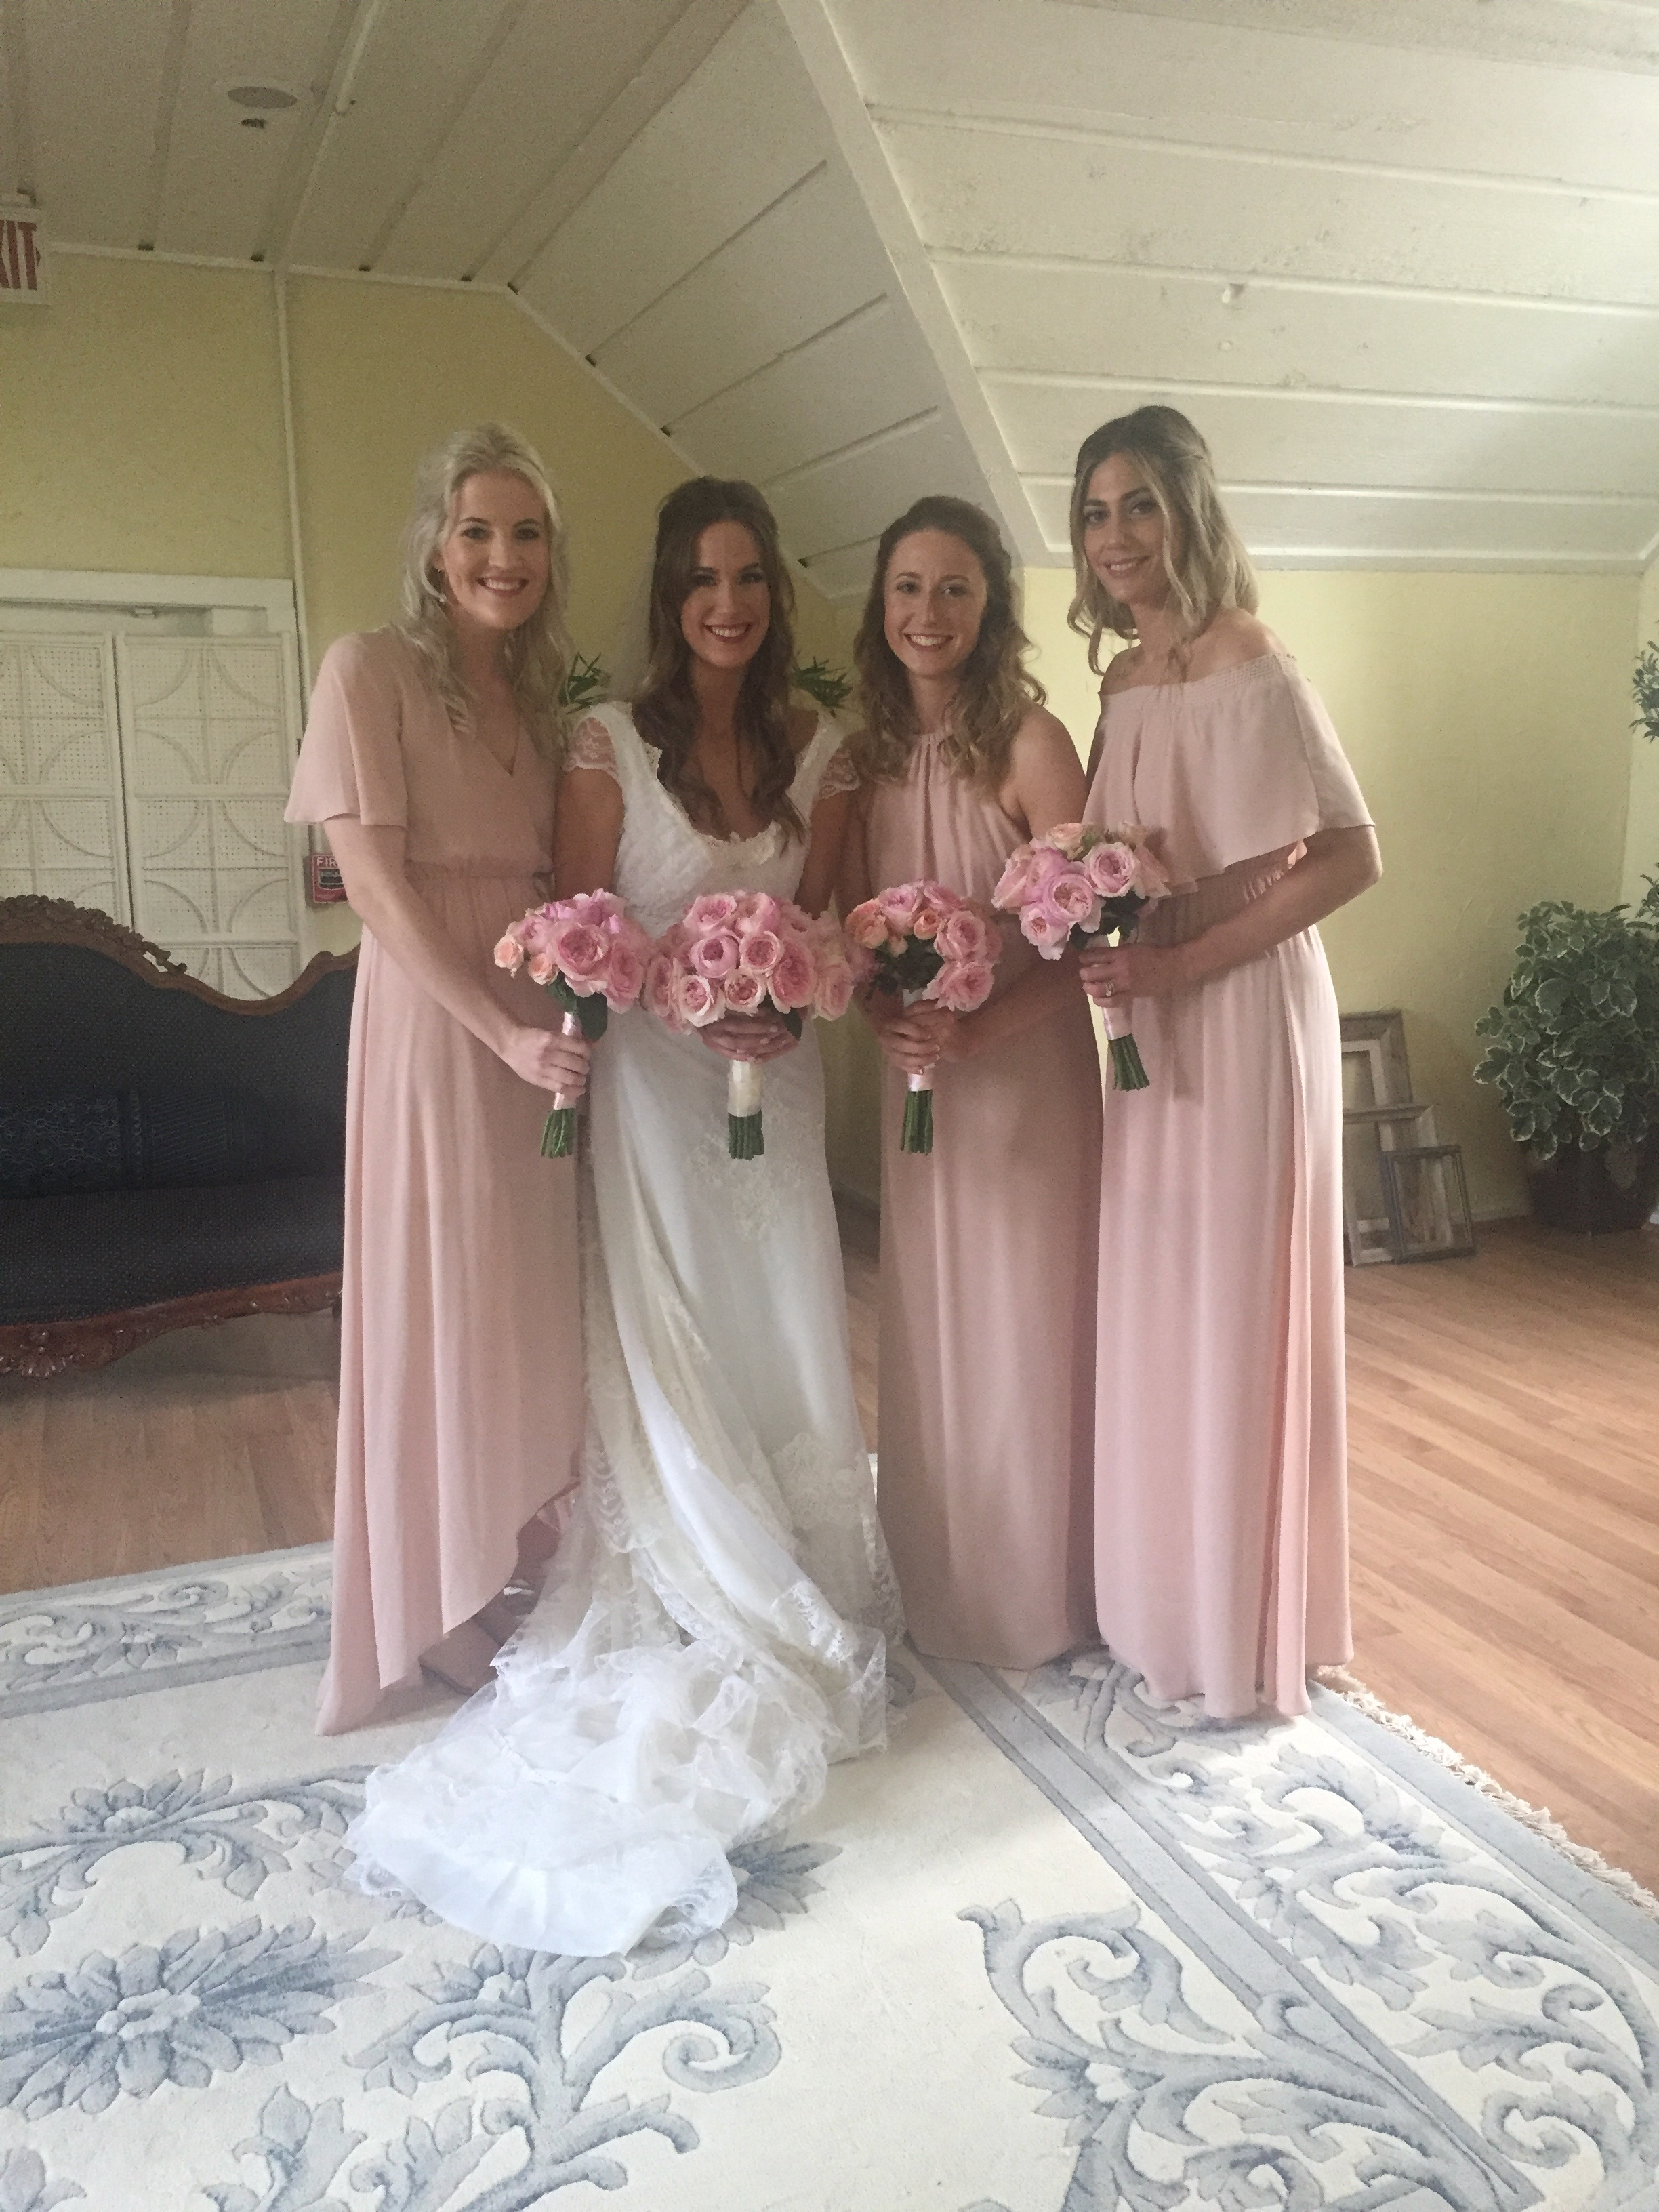 The Bride Wore Her Mothers Wedding Gown That Had Been Reworked For Best Fit Brides Maids Soft Pink Chiffon Dresses